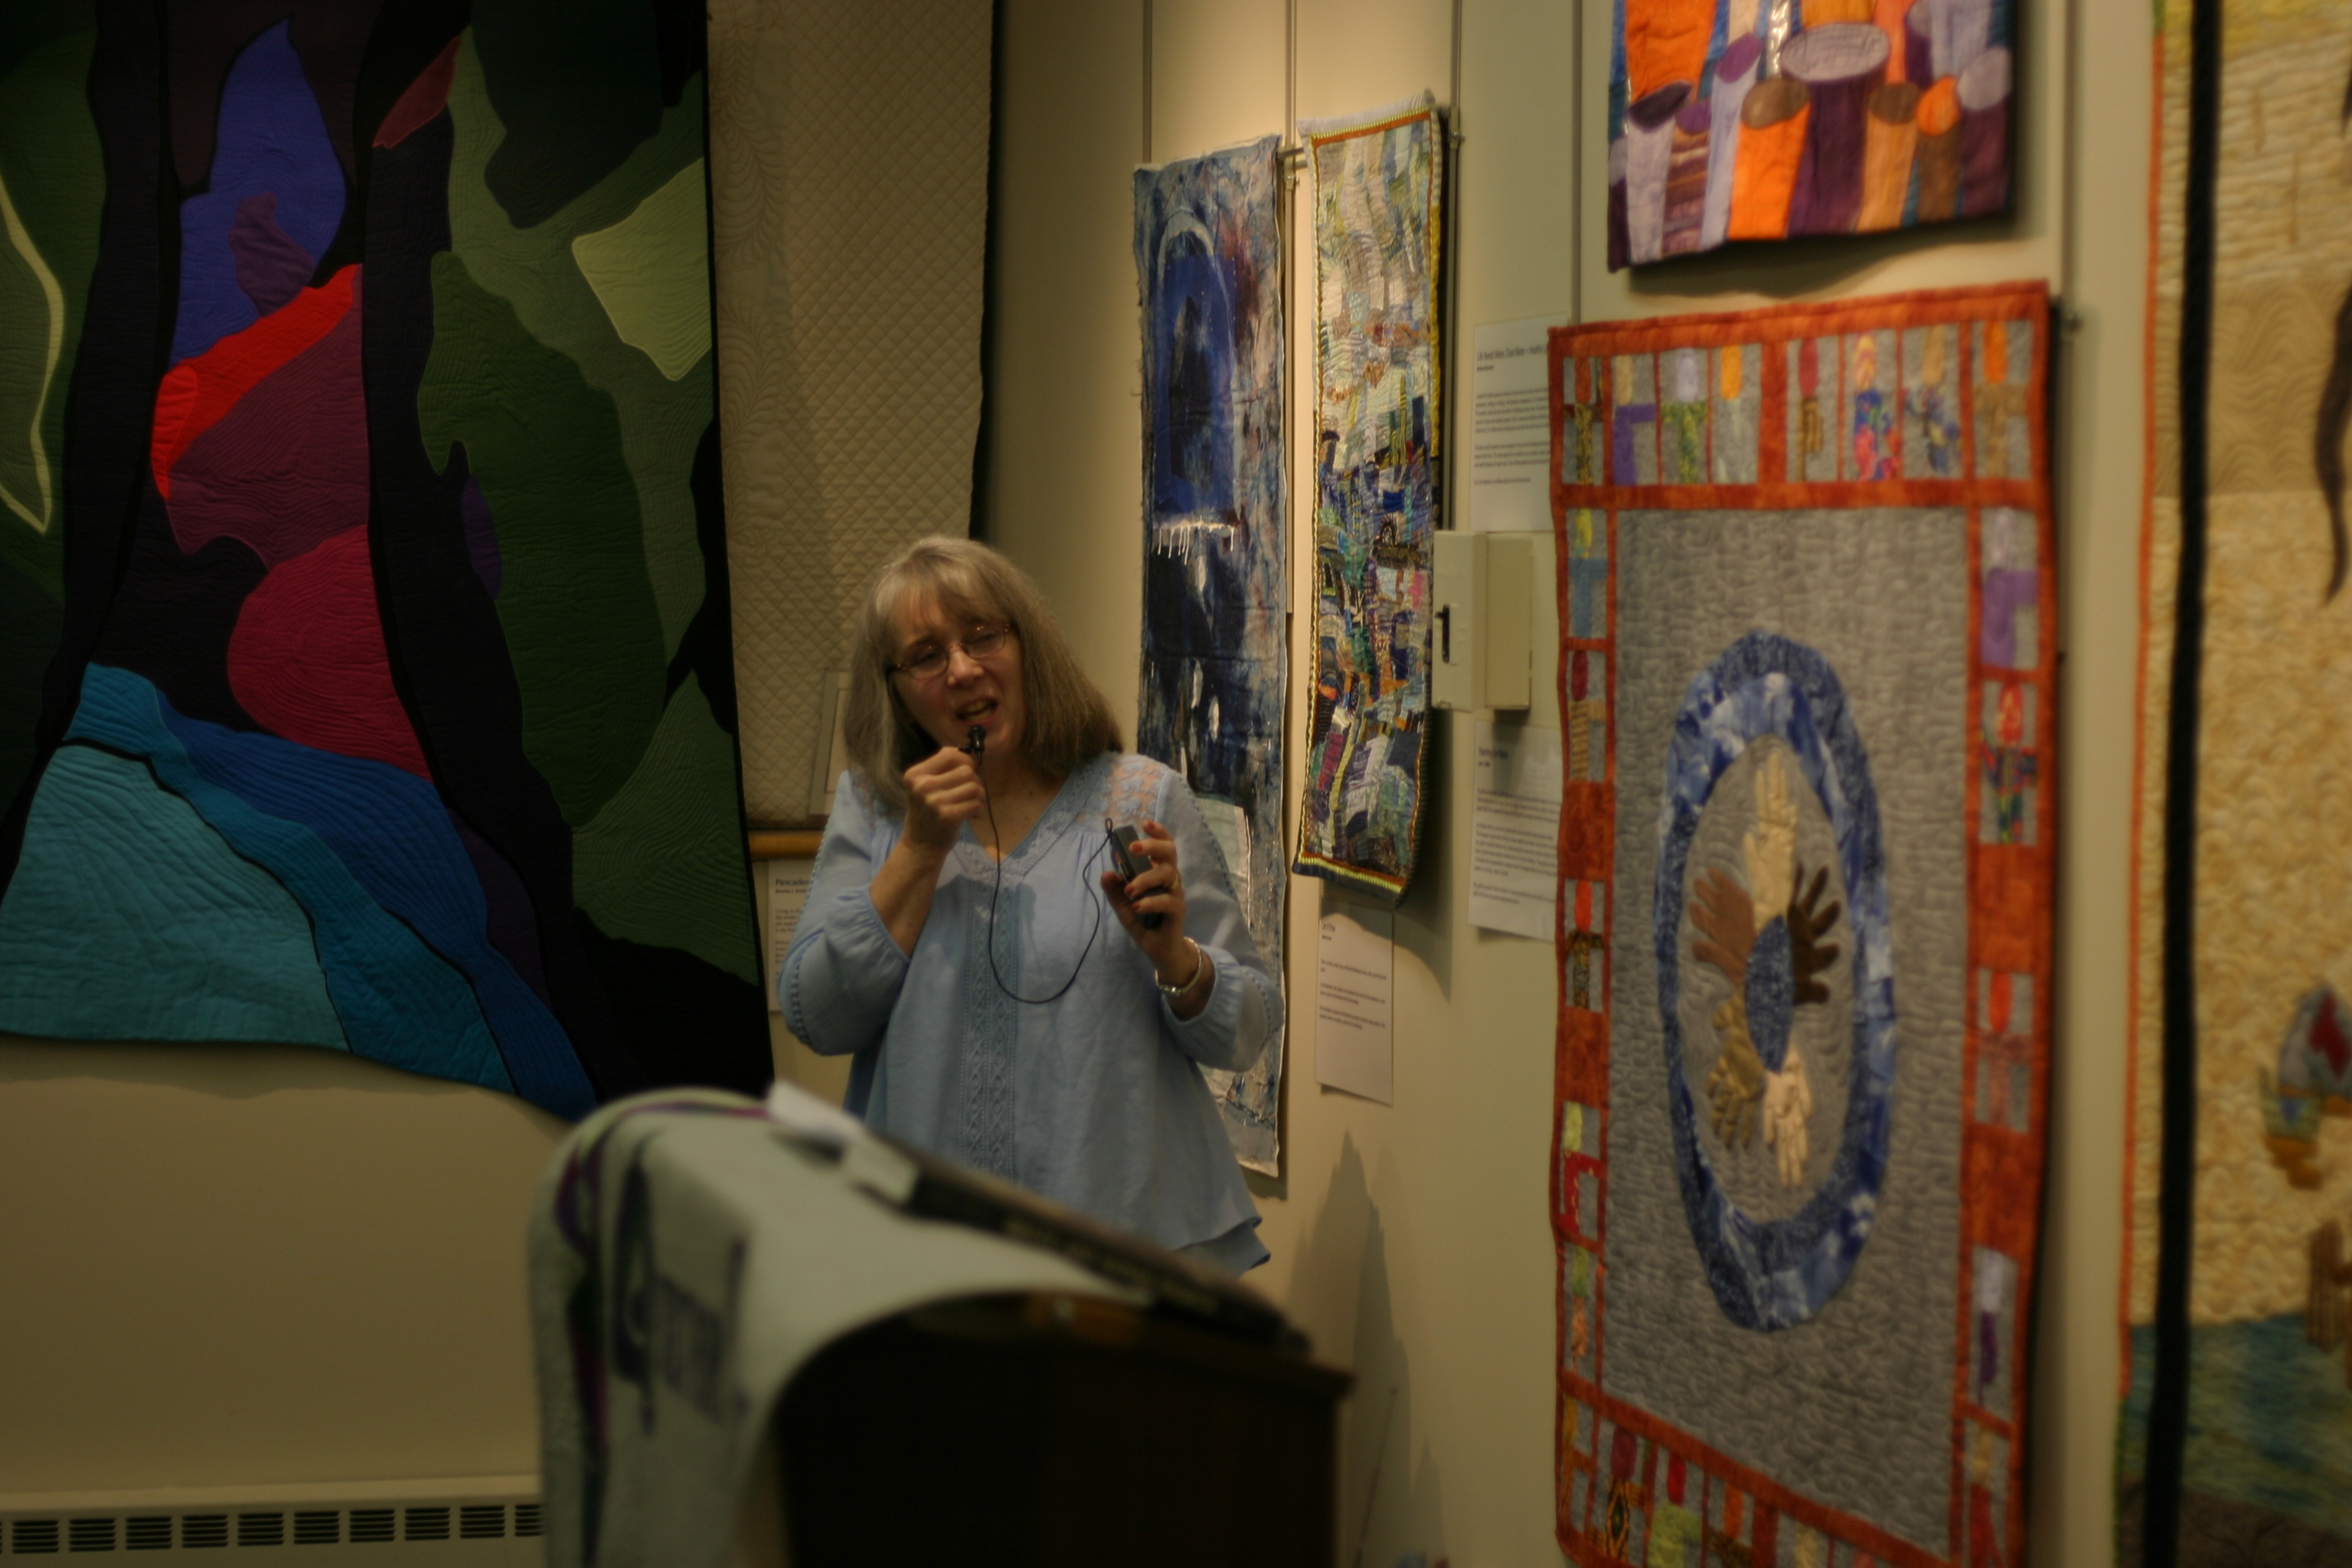 Lynn Miller with Yearning for Water